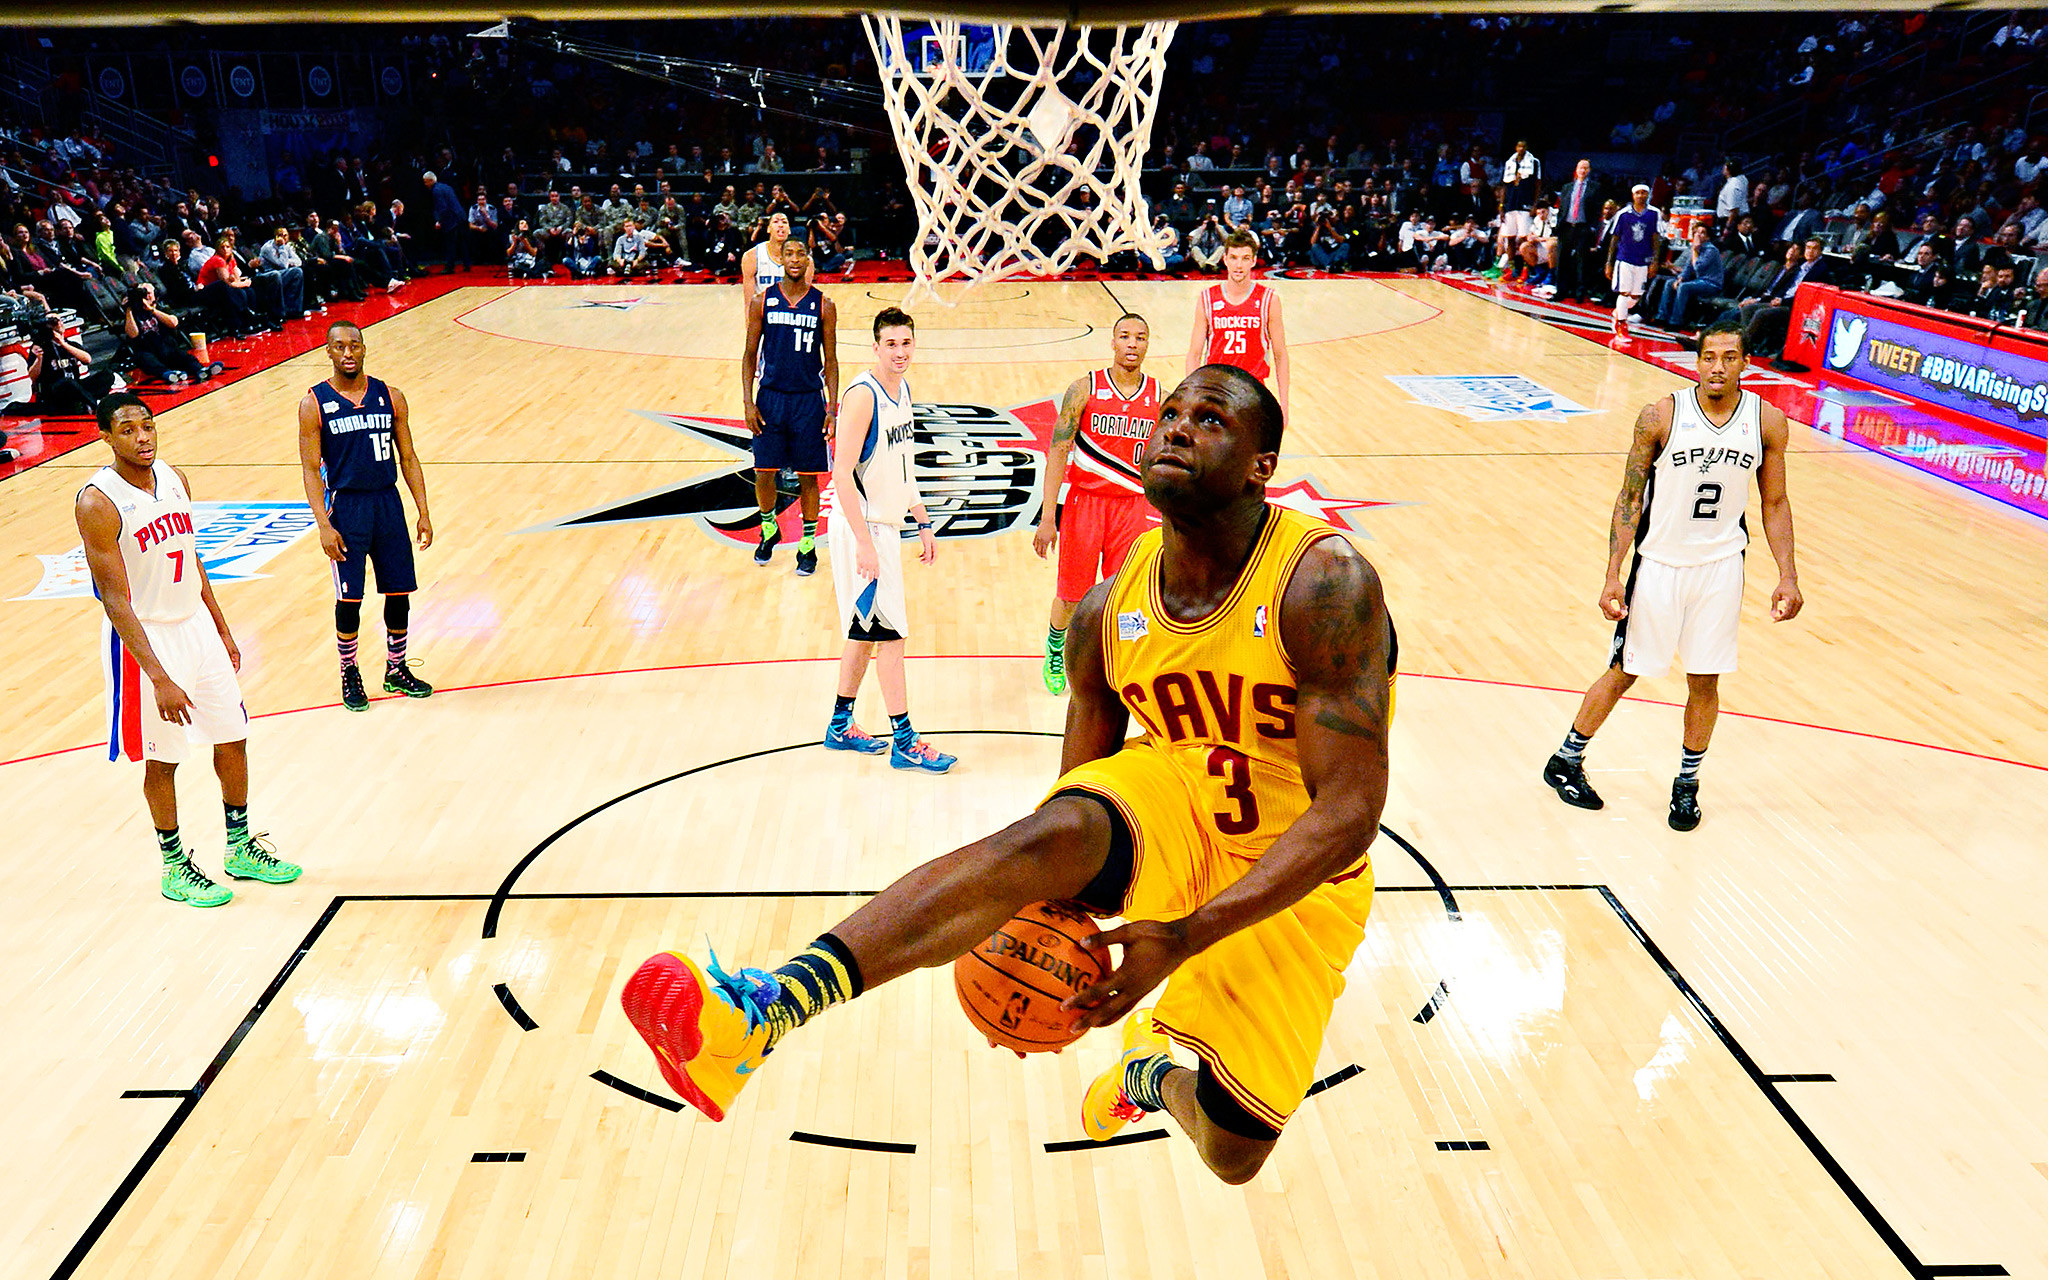 2048x1280 NBA. 2048x1280 NBA · Download · 1920x1080 Lebron james miami heat nba basketball player wallpaper